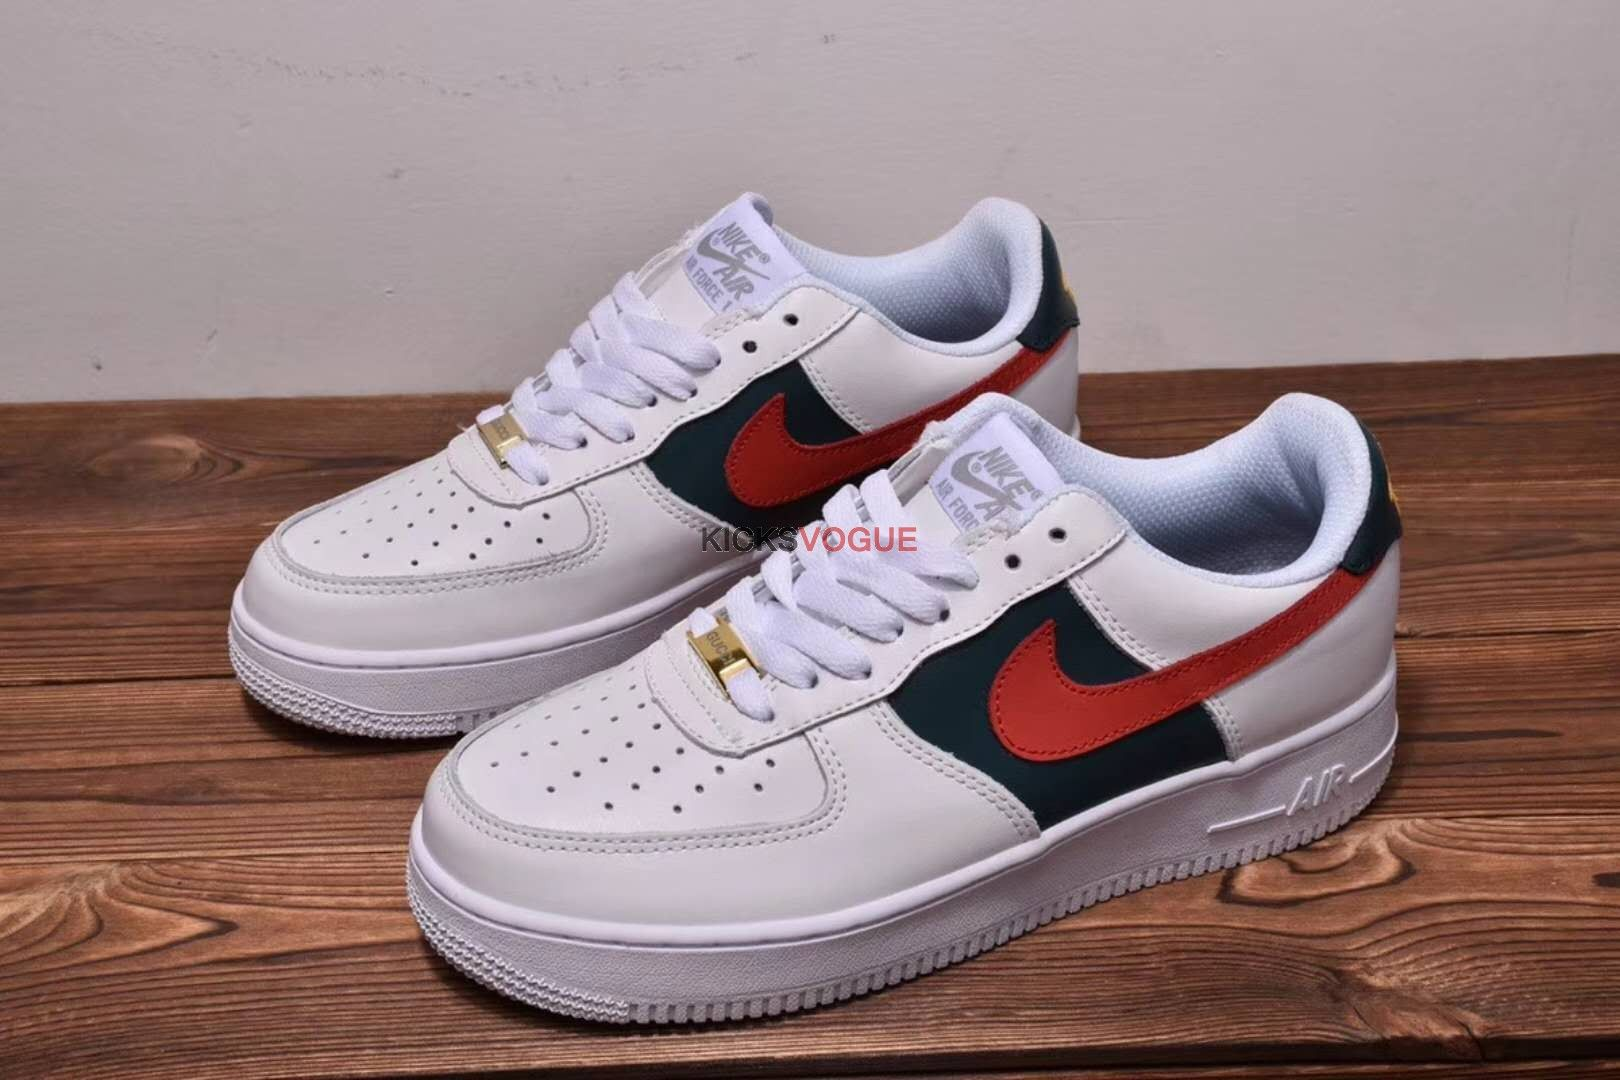 Custom Gucci Air Force 1 Low Red and Green Stripes Nike